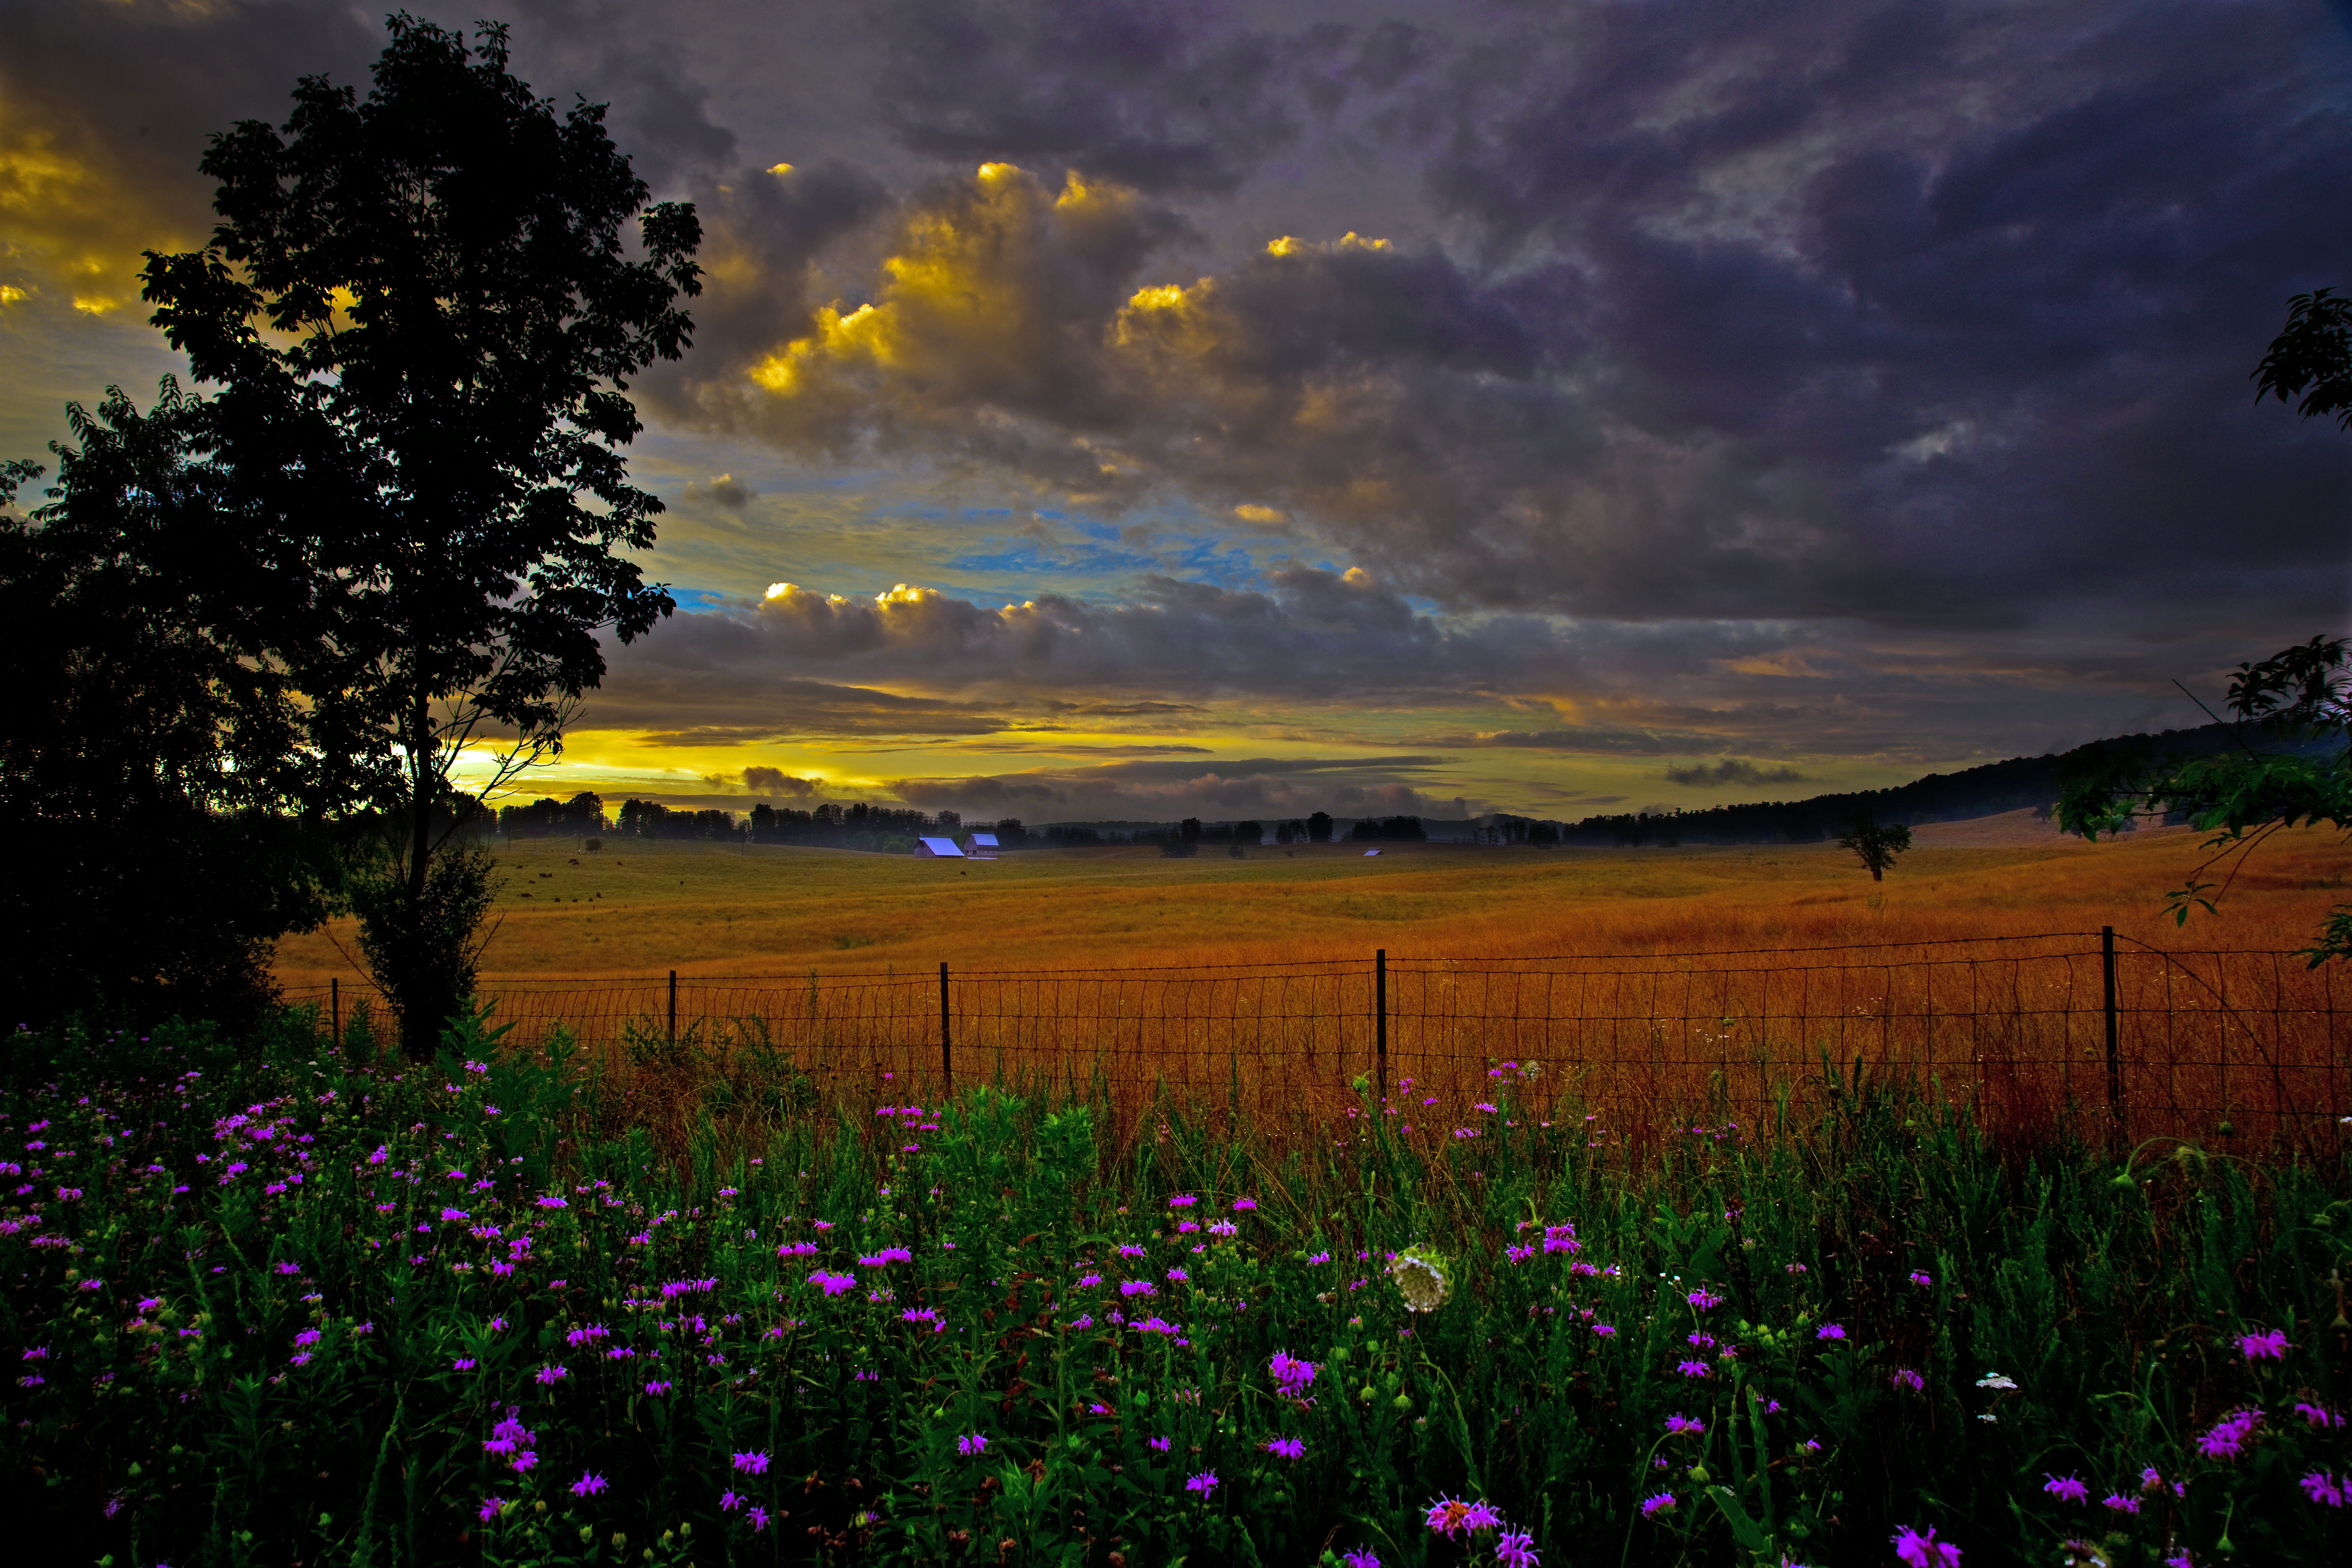 Scenic Country Farm Structures Nature Pictures by ForestWander 5616x3744